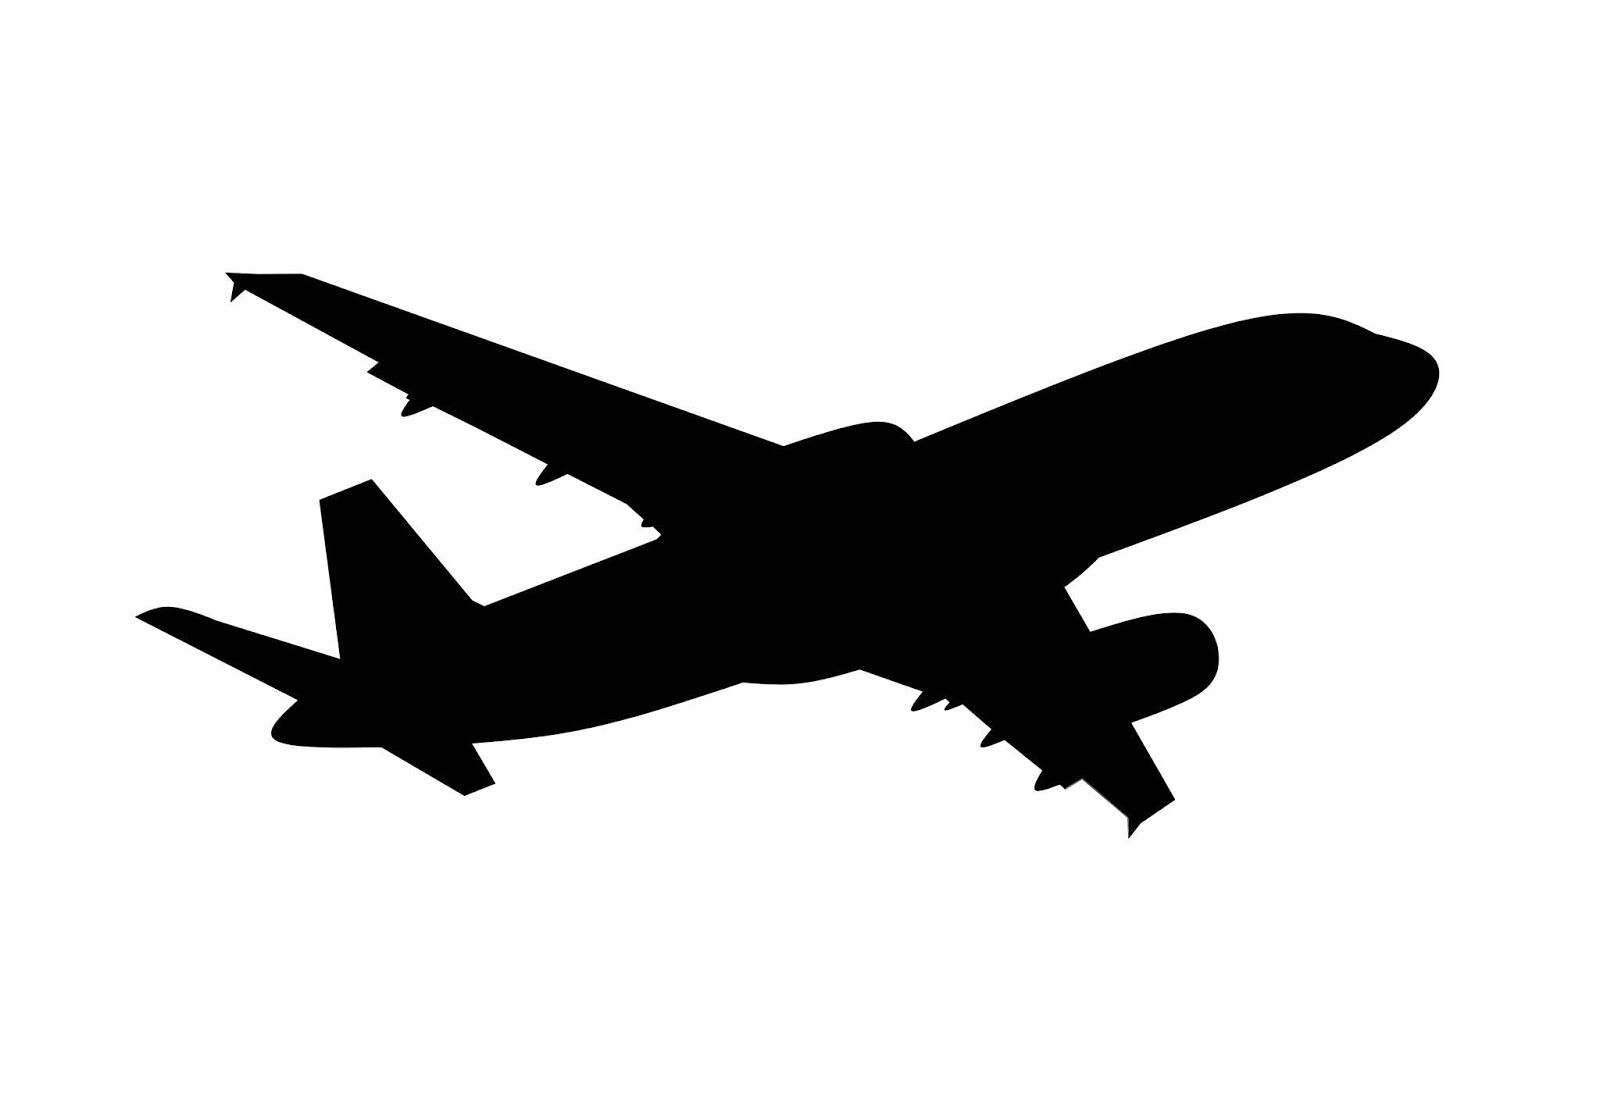 Airplane Silhouette Free Illustration Airplane Silhouette Plane Silhouette Free Illustrations